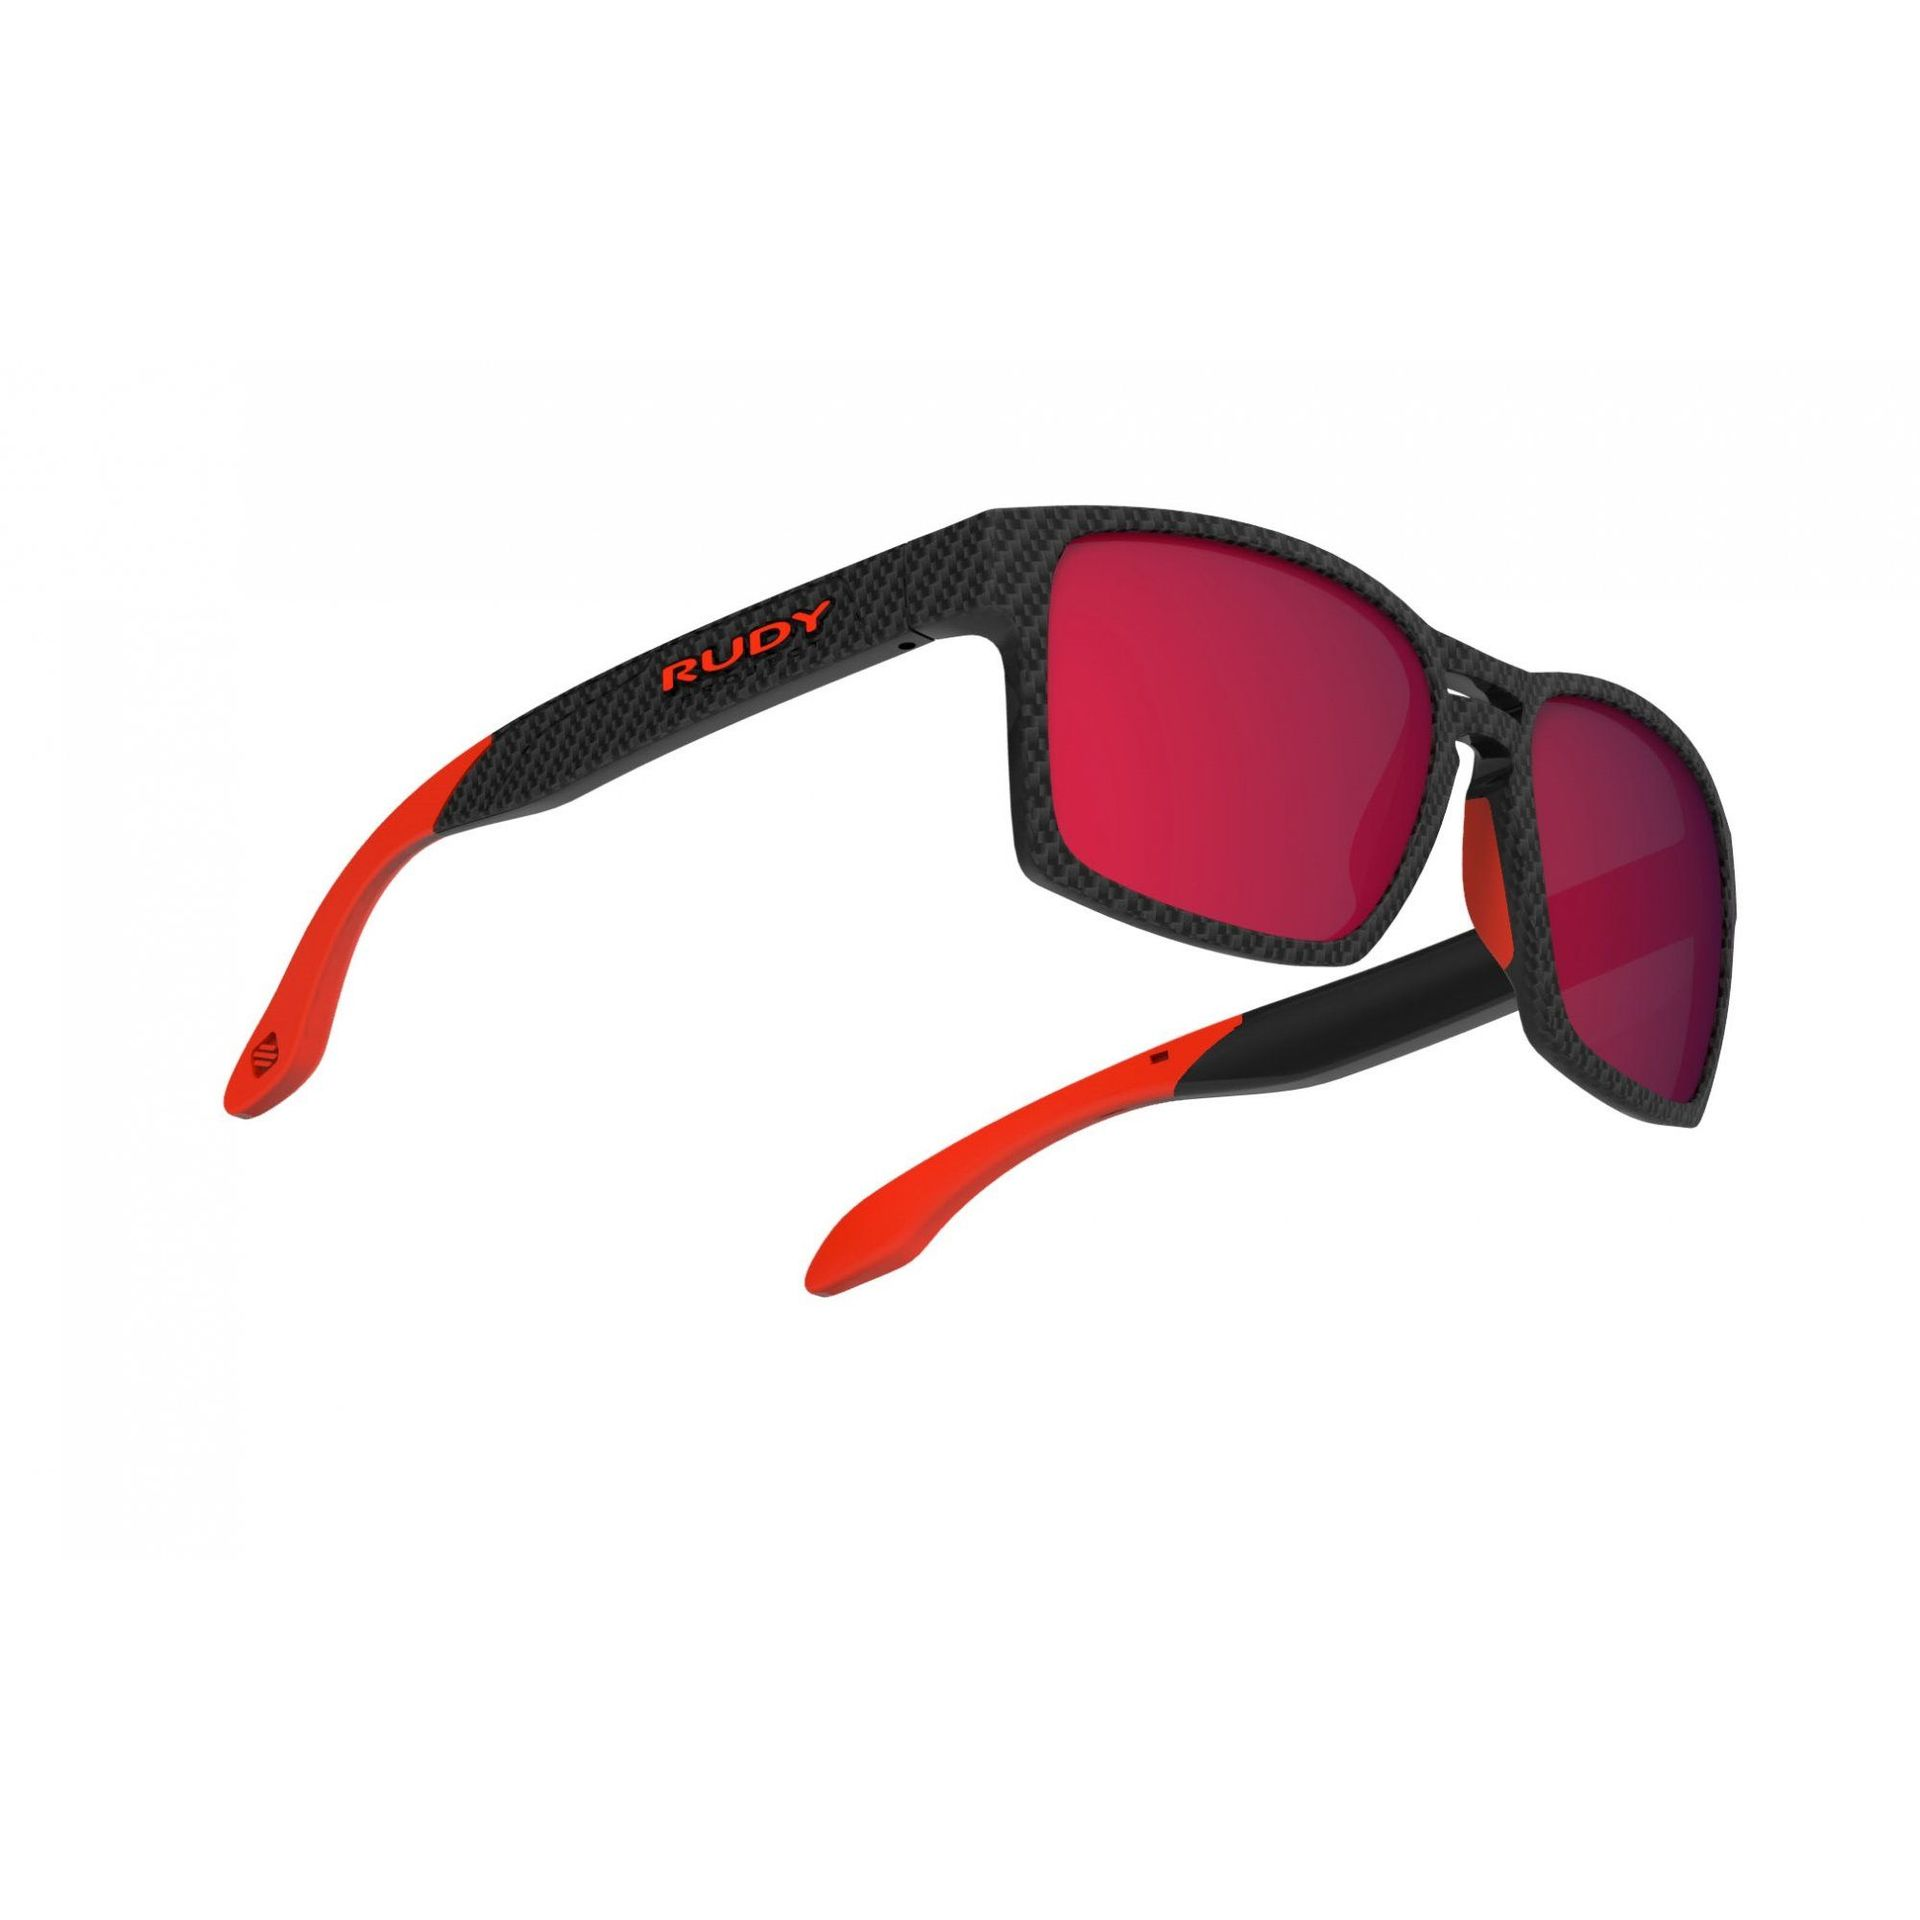 OKULARY RUDY PROJECT SPINAIR 57 CARBONIUM + ML RED SP573819 4